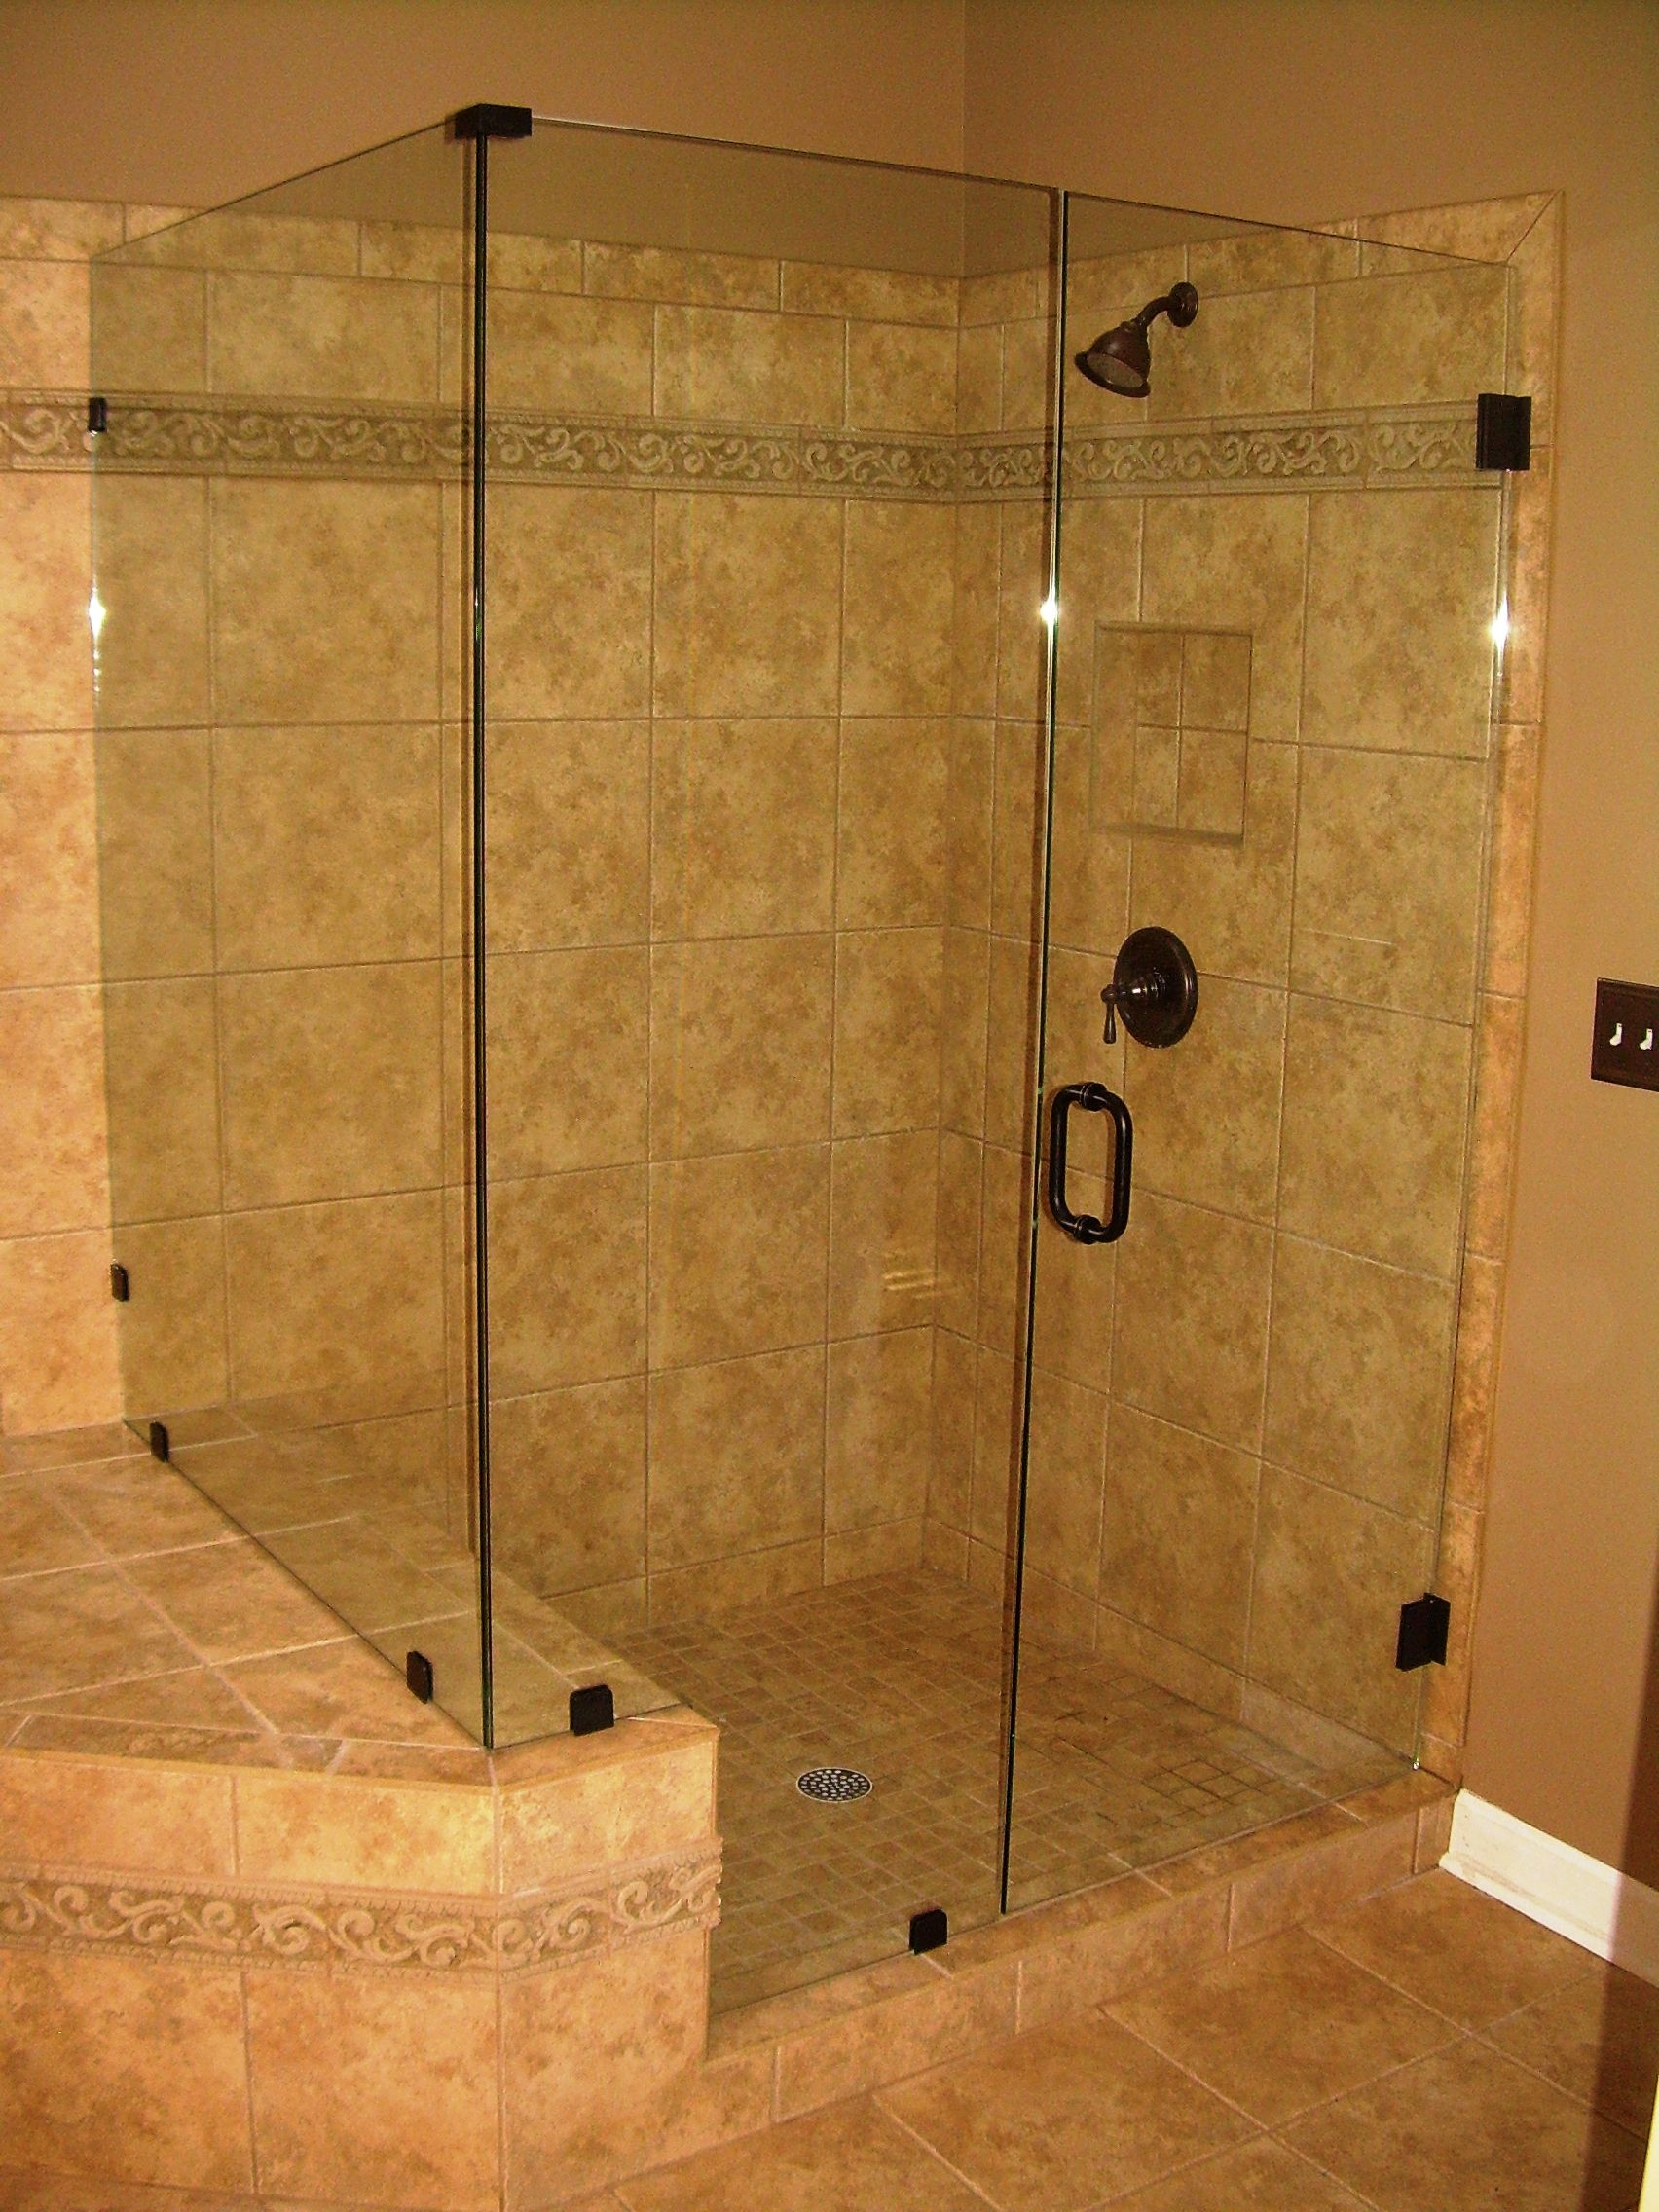 Bathroom Shower Doors Frameless - Frameless shower doors glass tub enclosures shower door charlotte nc glass doctor